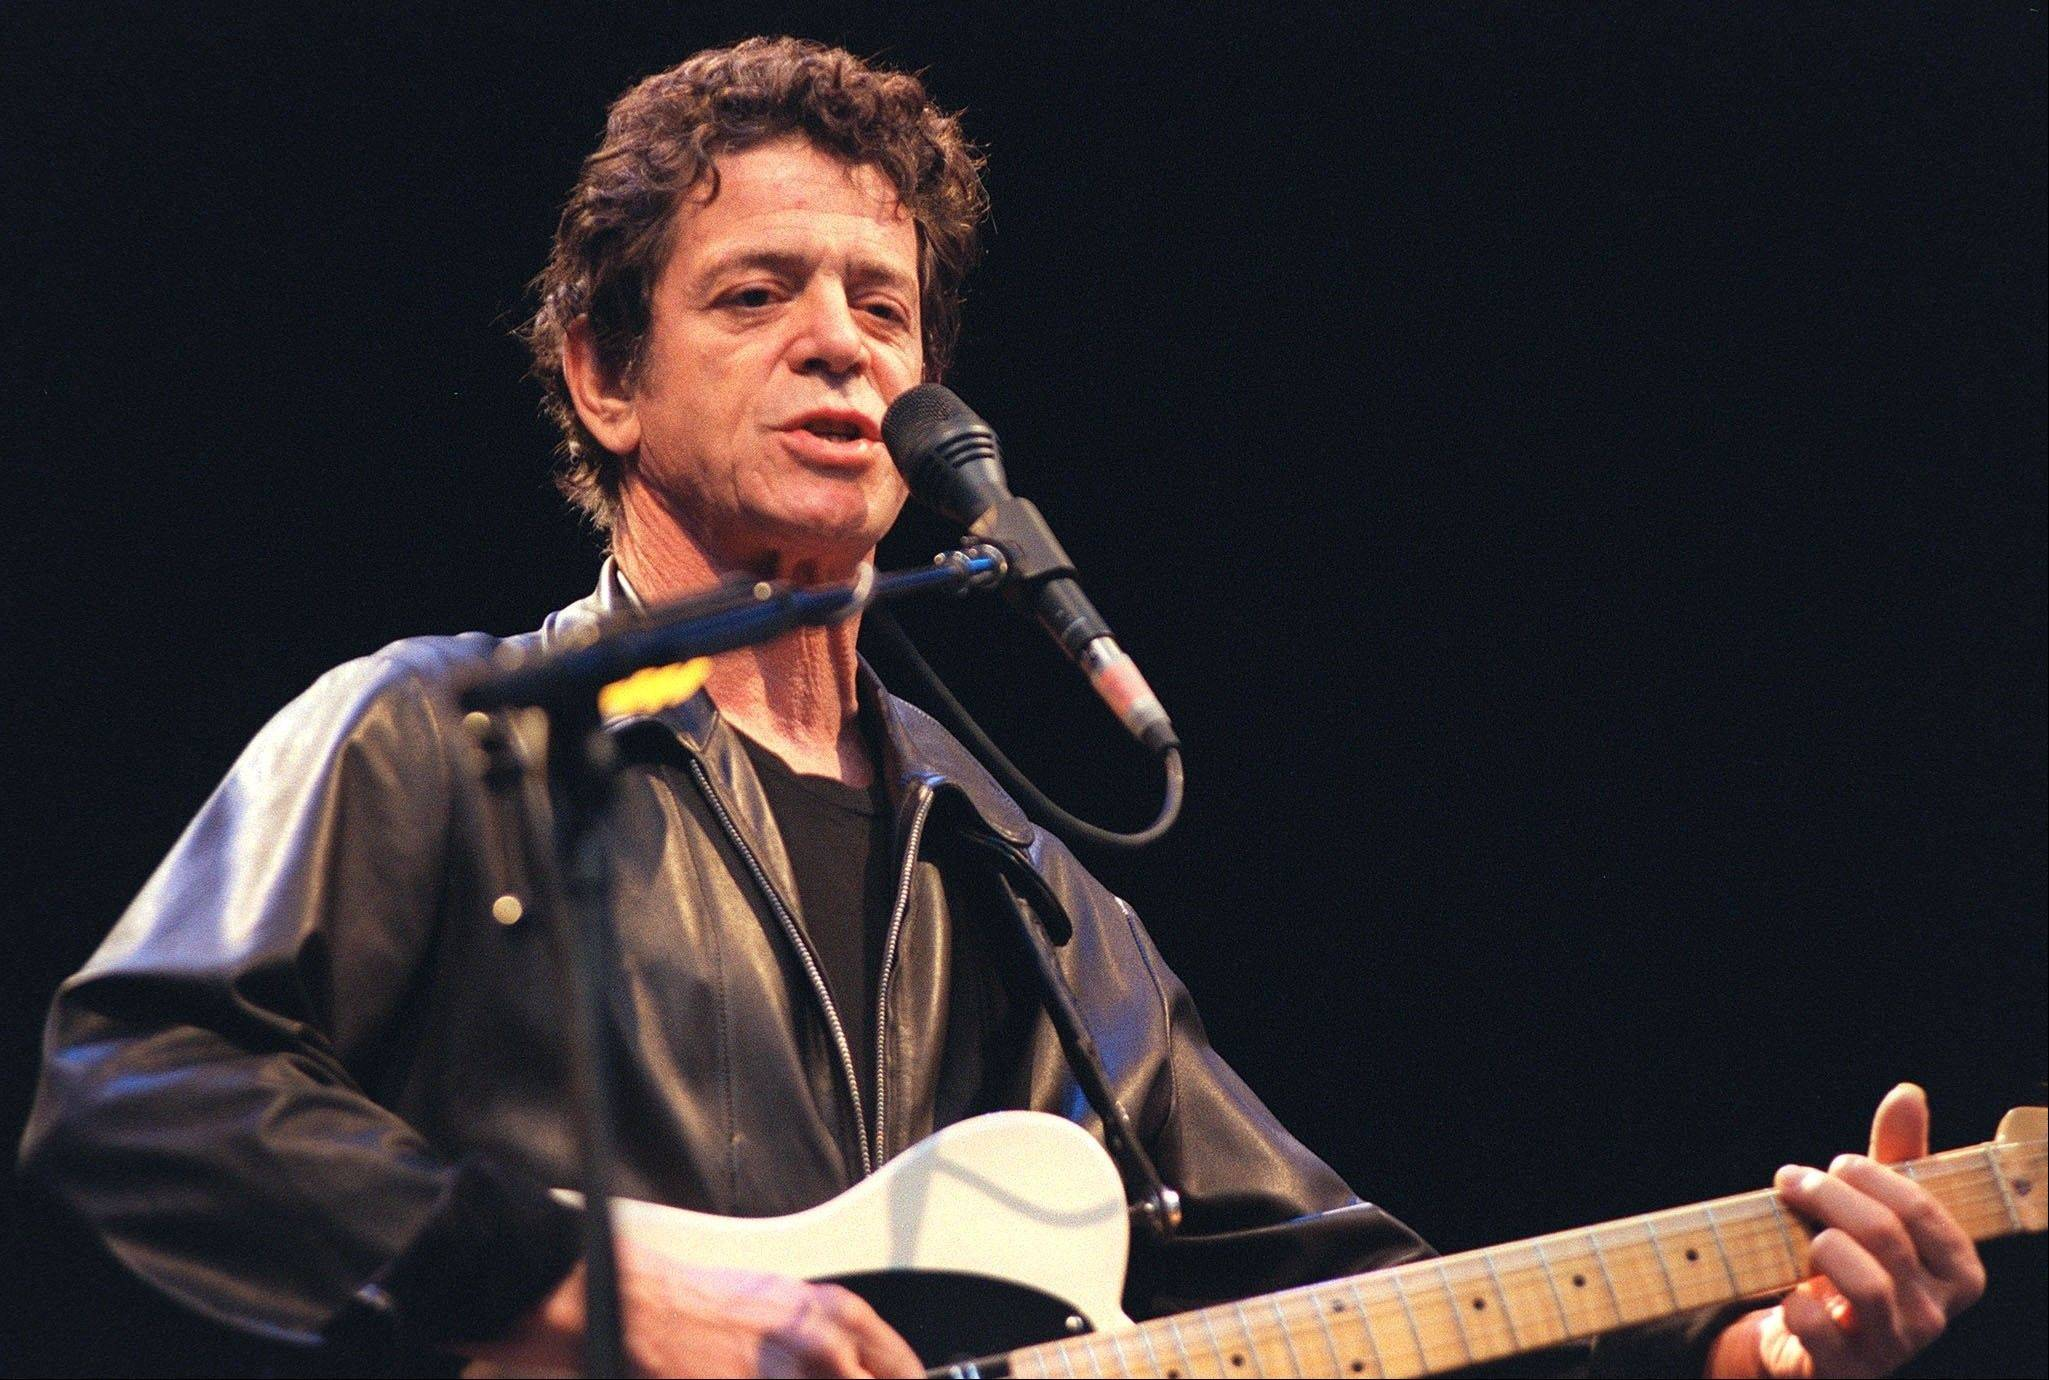 "In this July 30, 2000 file photo, Lou Reed performs onstage at the open air ""Live at Sunset"" concert in Zurich, Switzerland. Reed, the punk poet of rock 'n' roll who profoundly influenced generations of musicians as leader of the Velvet Underground and remained a vital solo performer for decades after, died Oct. 27, 2013. He was 71."